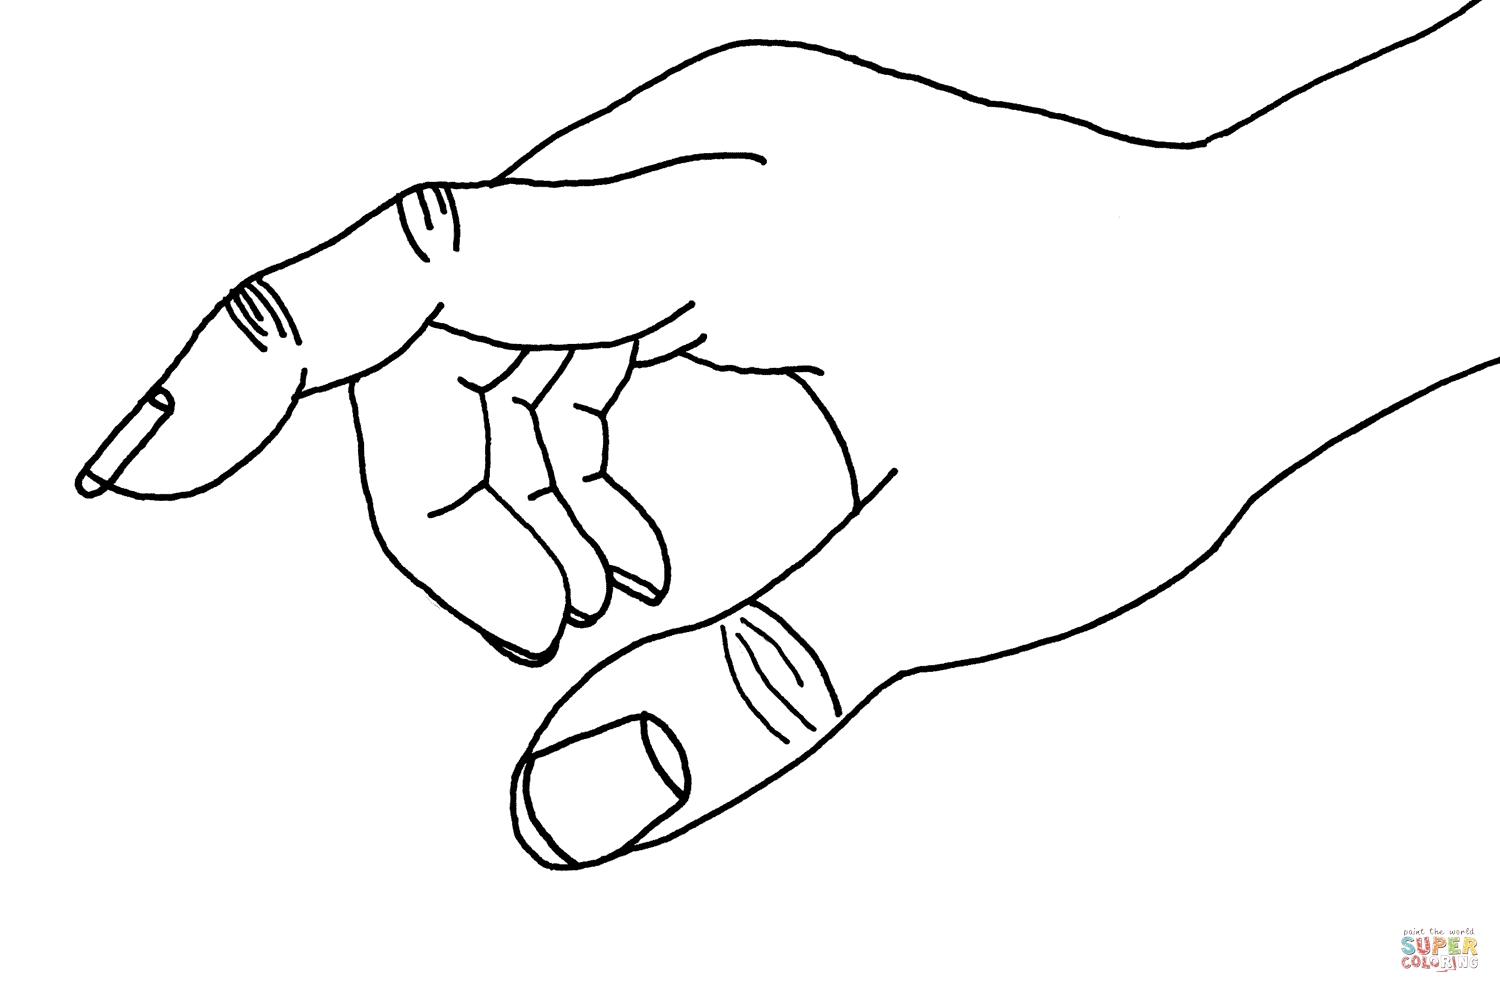 hand coloring page - pointing hand sketch templates